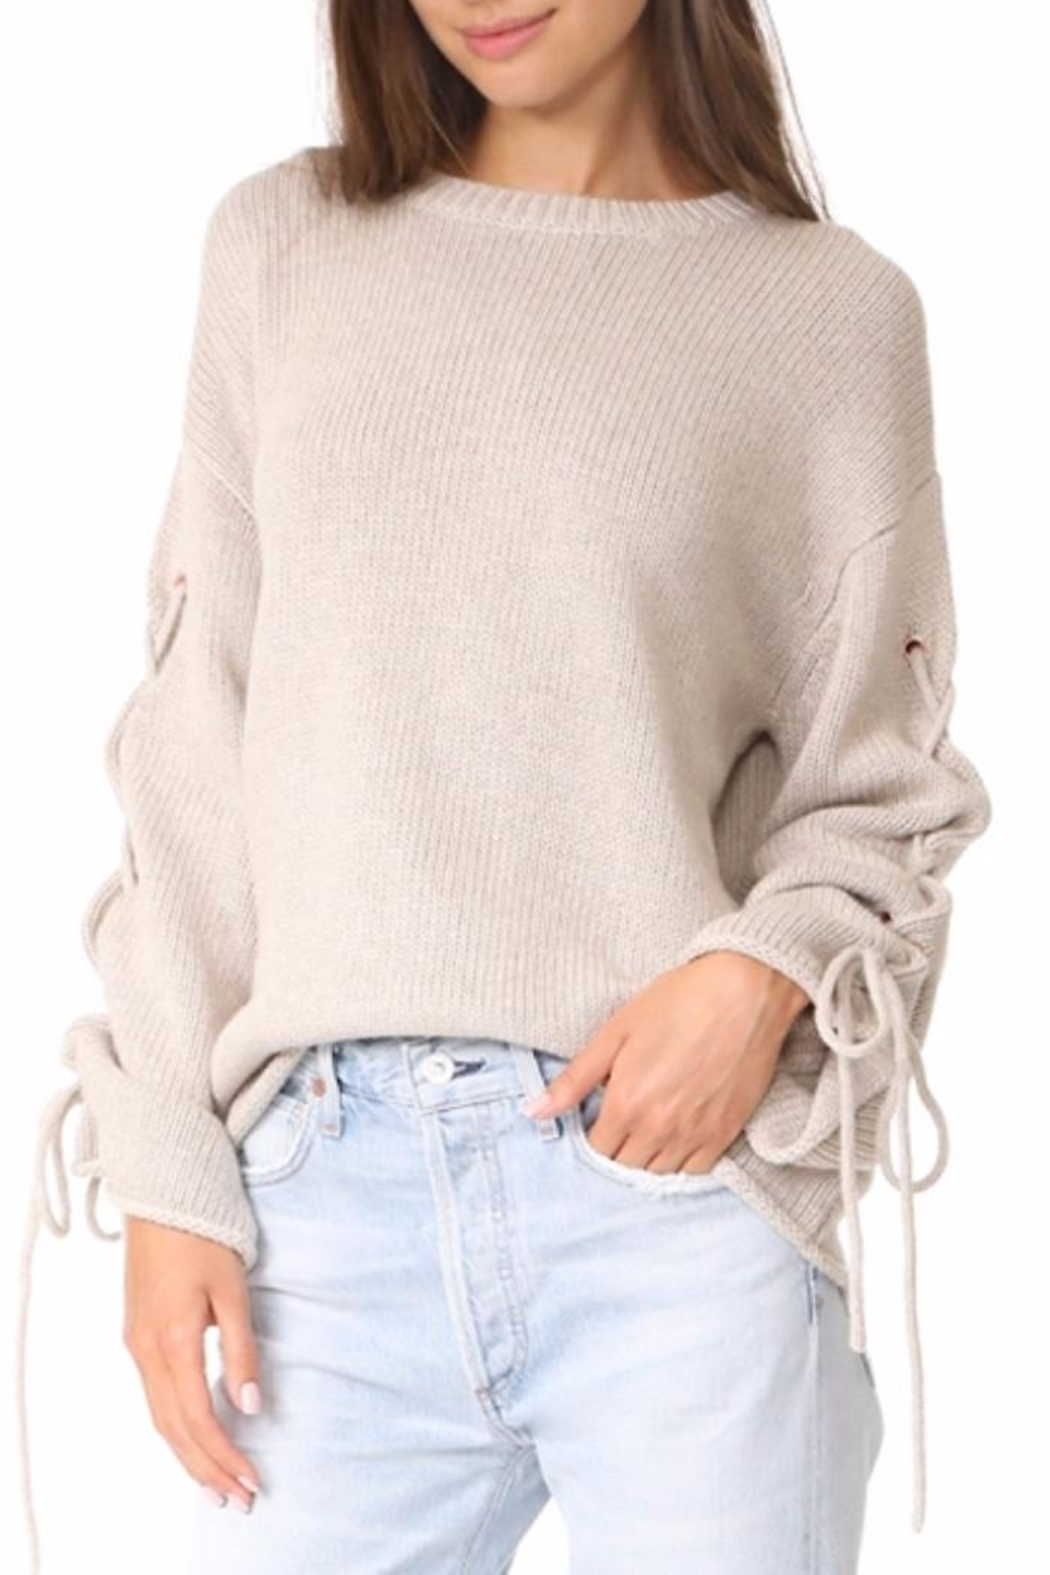 People Outfitter Ailbe Lace Up Sweater - Main Image